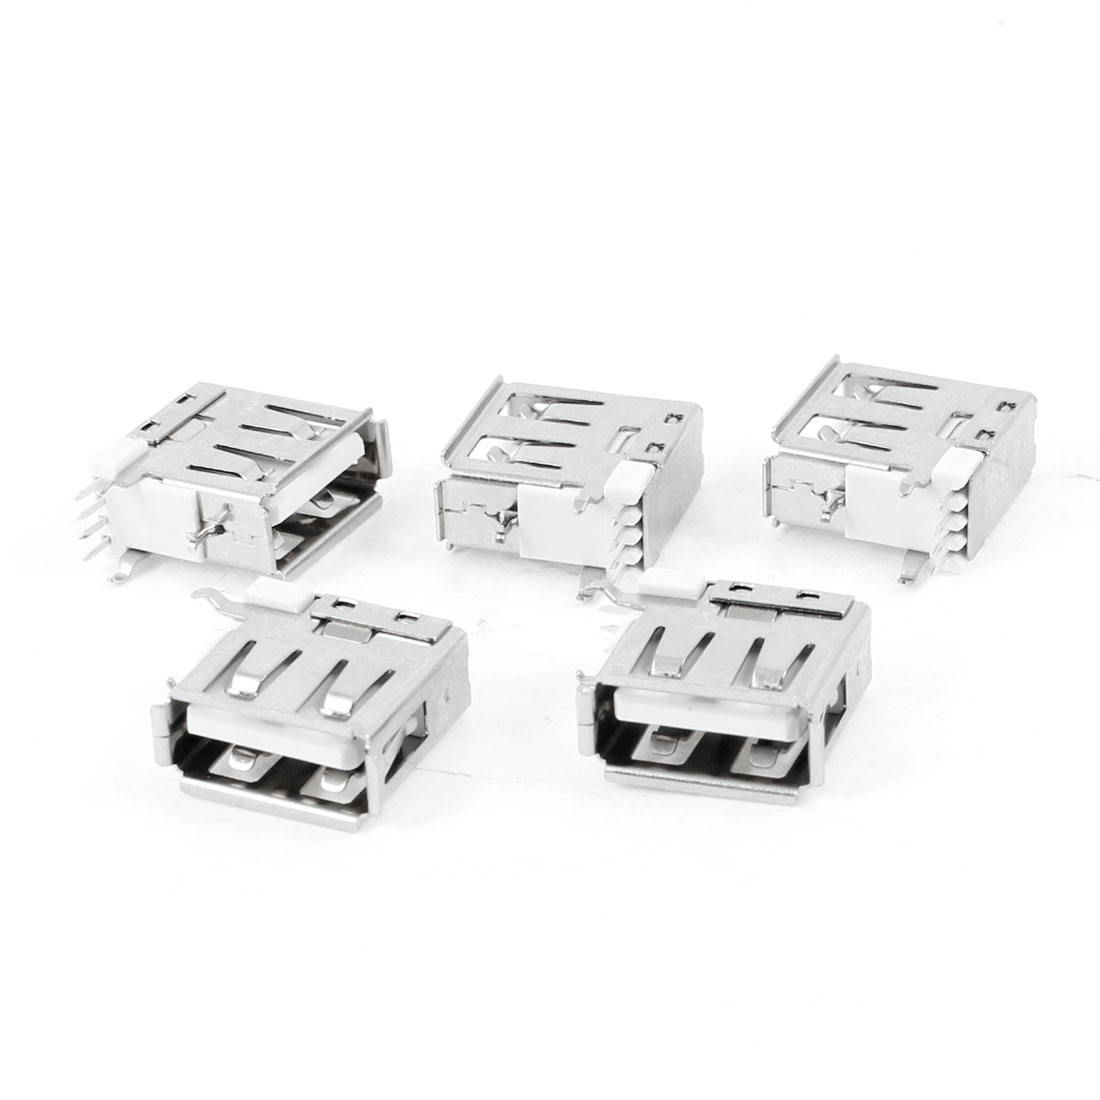 5 Pcs USB Type A Female Side Insert DIP 90 Degree 4-Pin Jack Socket